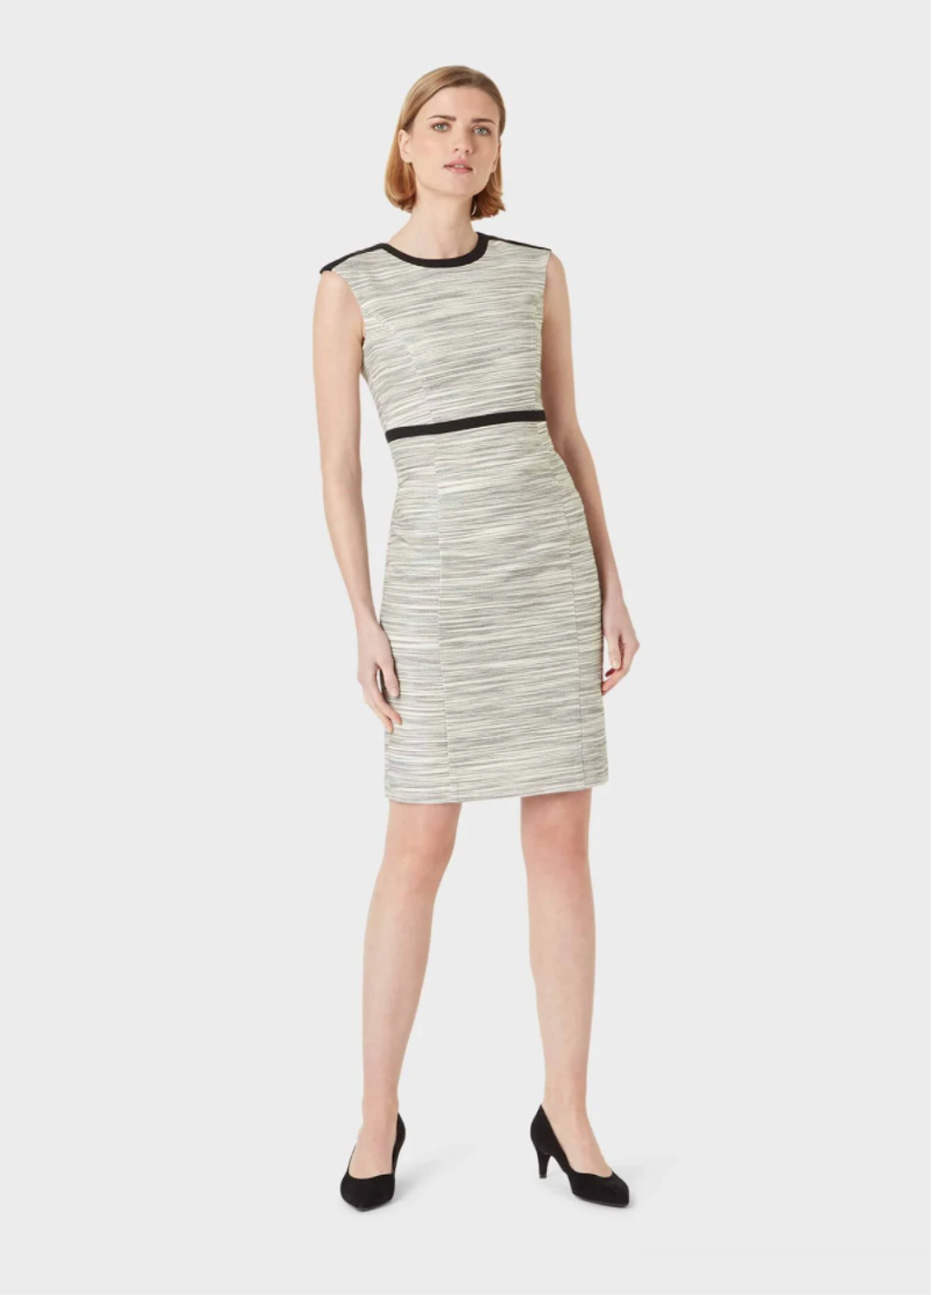 Fitted shift dress paired with black court shoes by Hobbs.